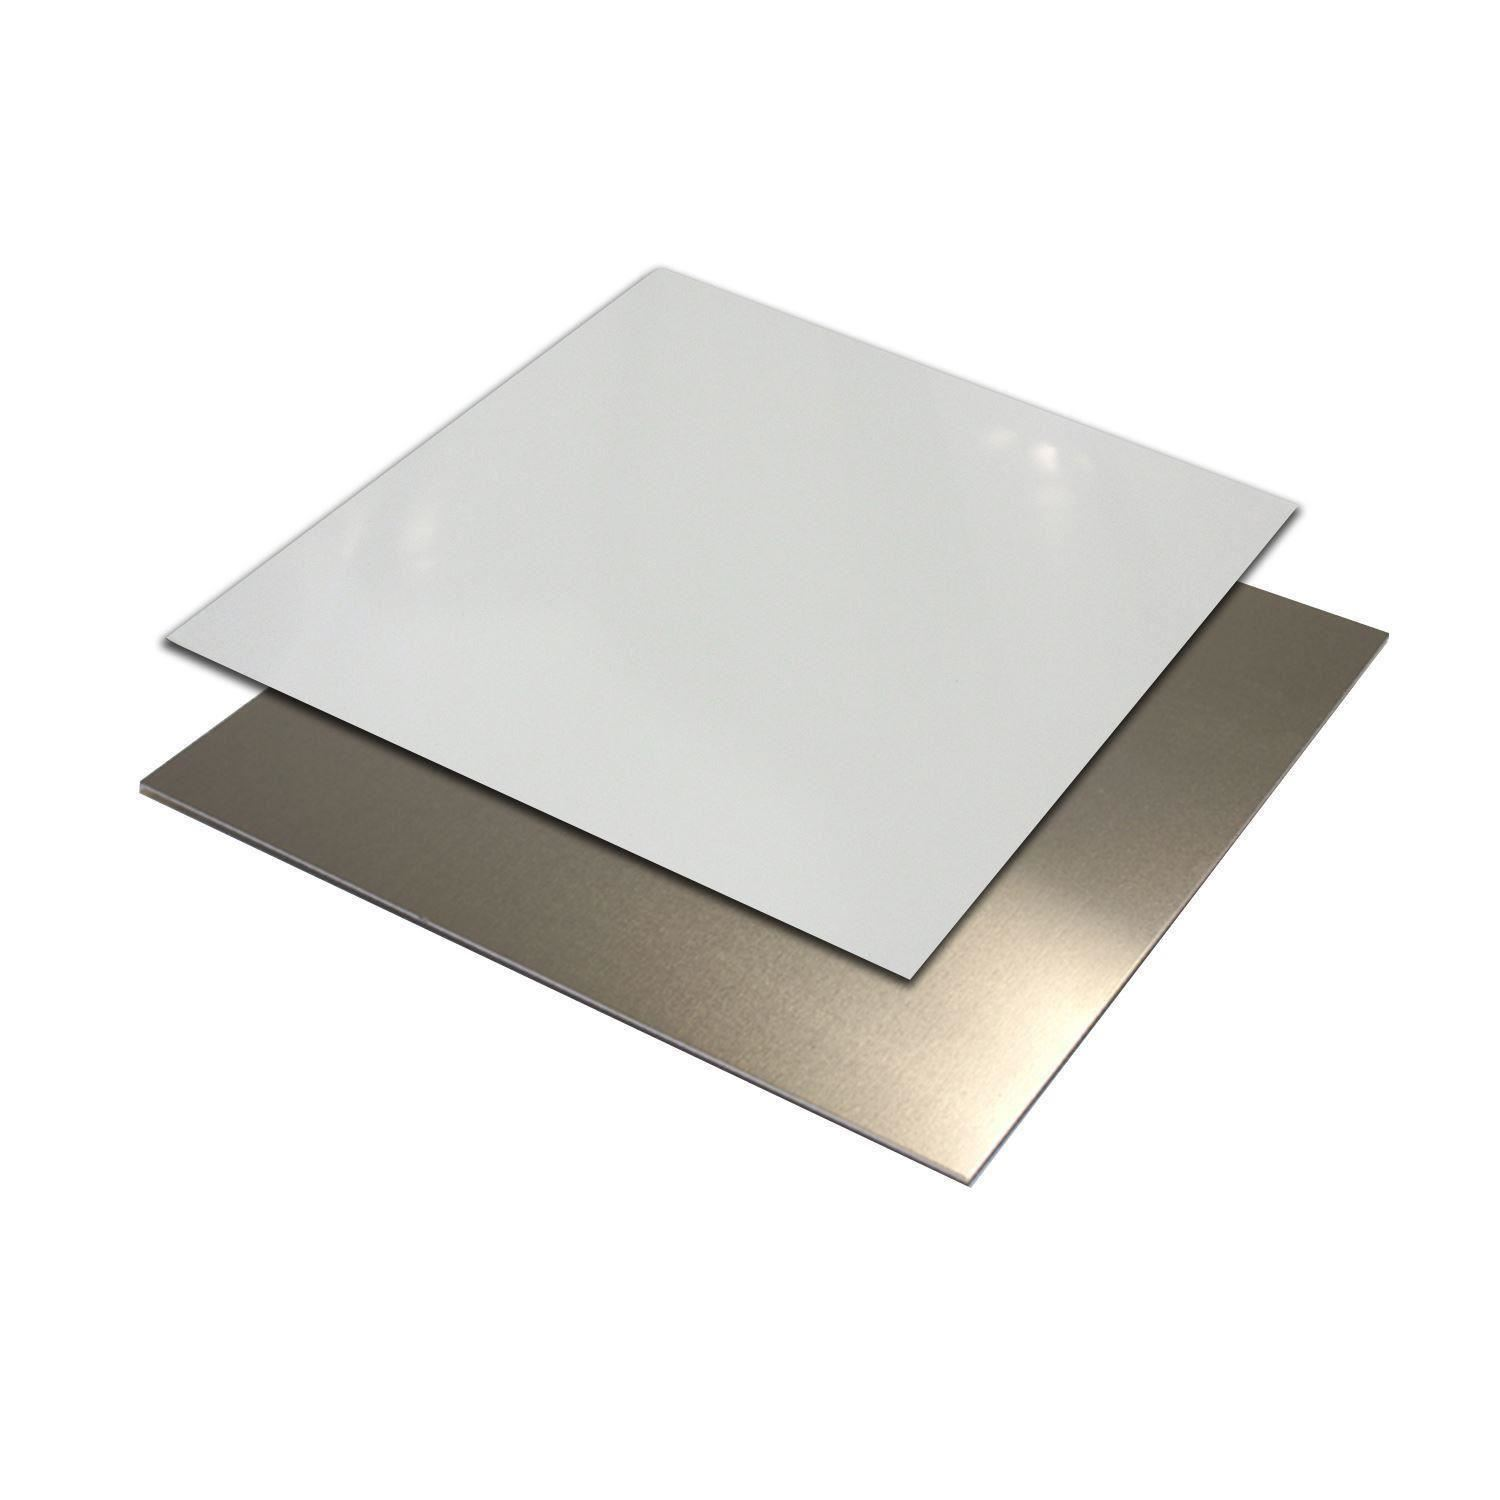 White Painted Mill Finish Aluminum Sheet 040 Quot X 24 Quot X